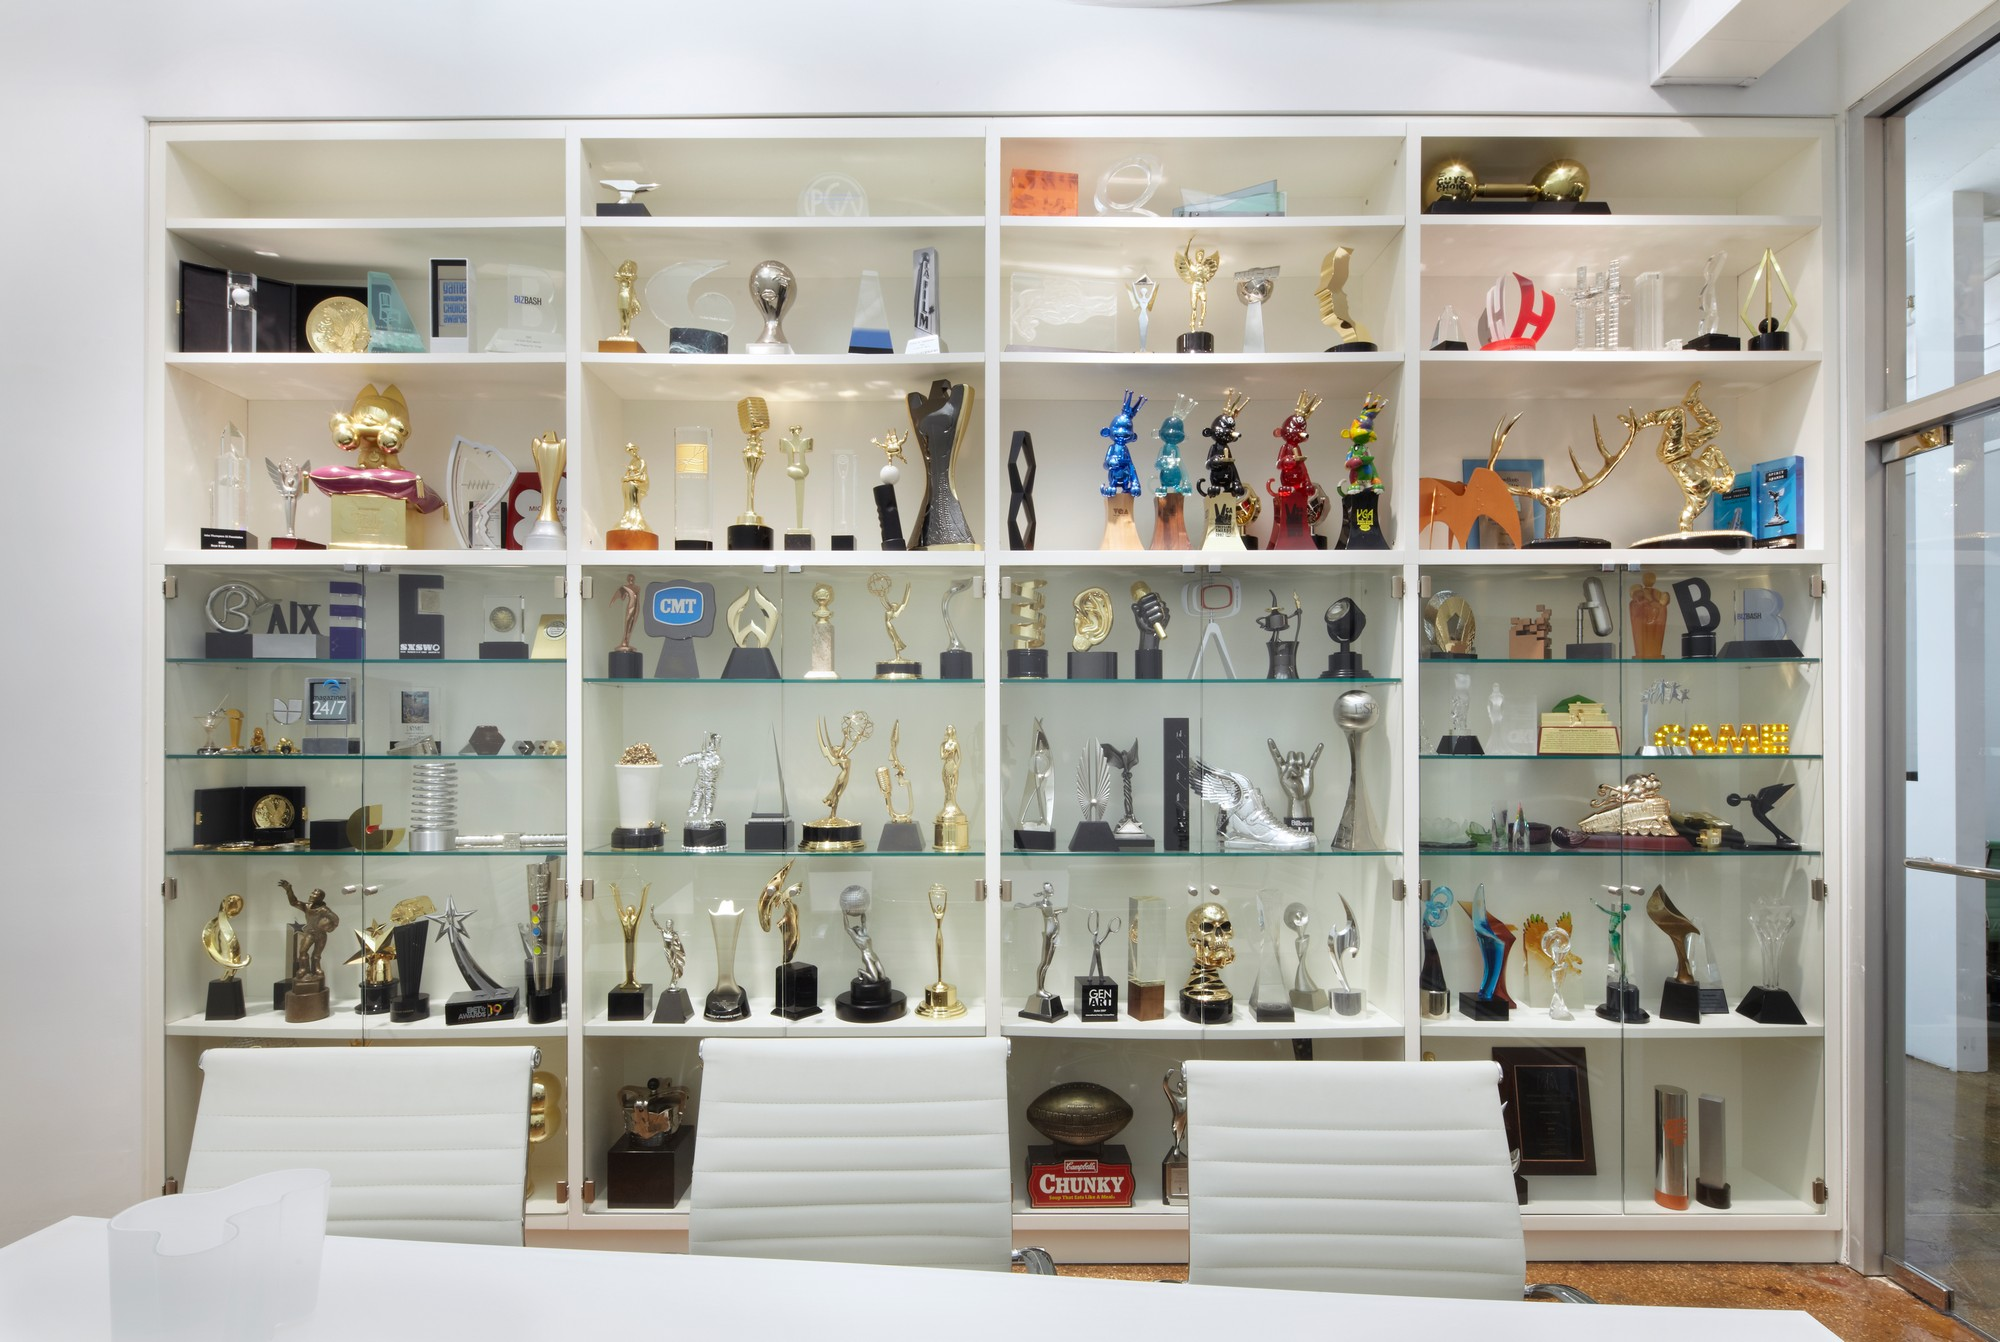 custom awards in glass display cabinets